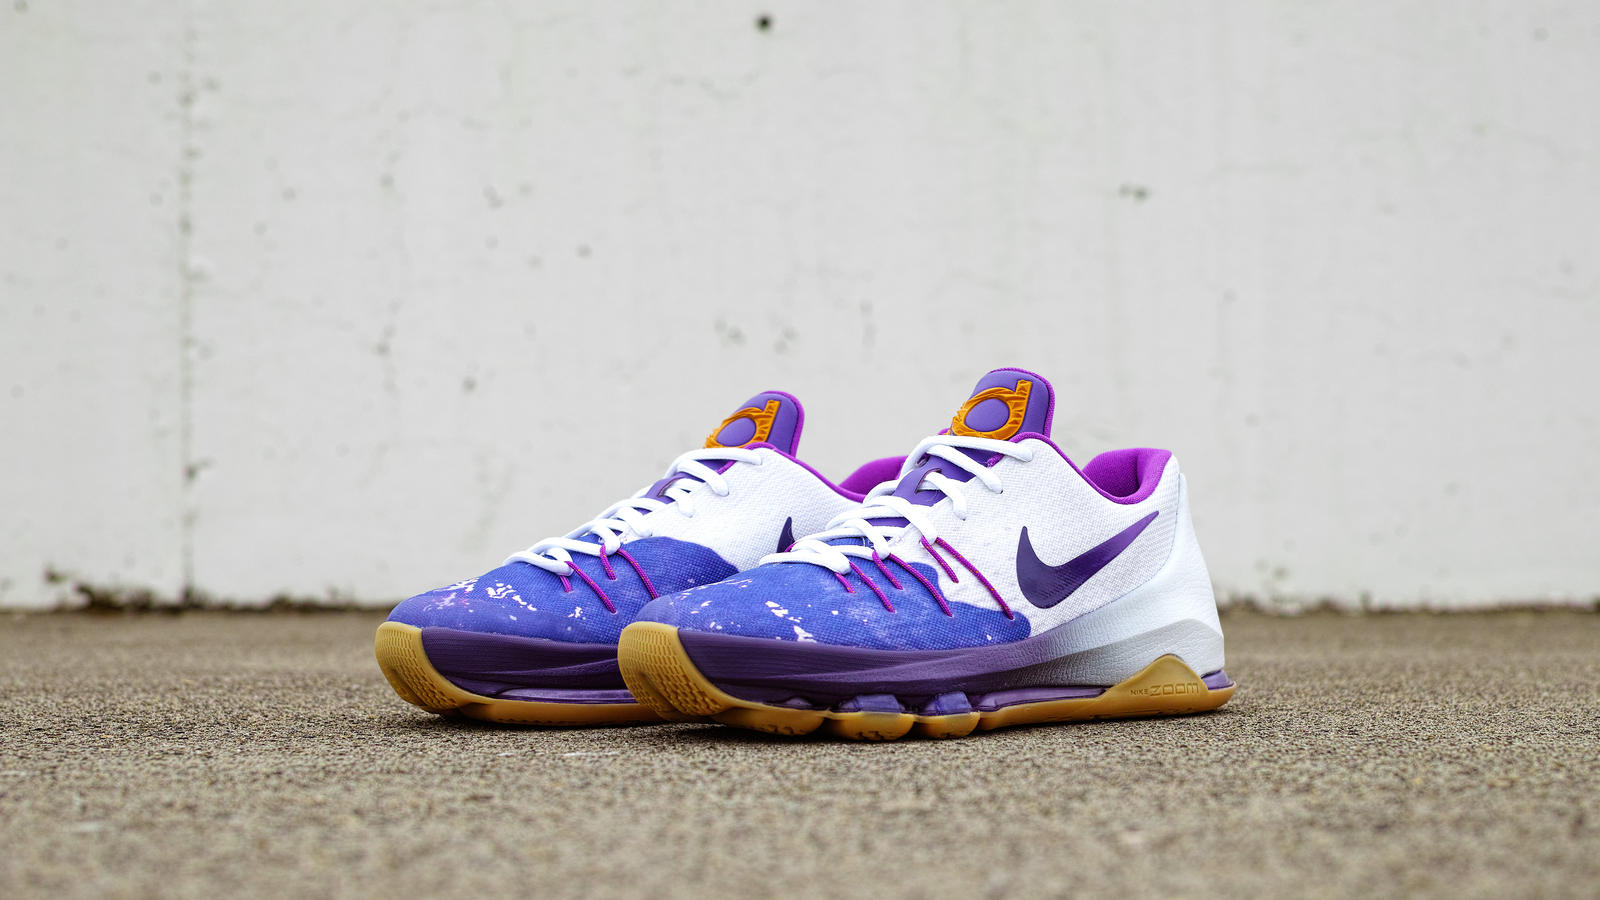 Kd purple ya 2up hd 1600